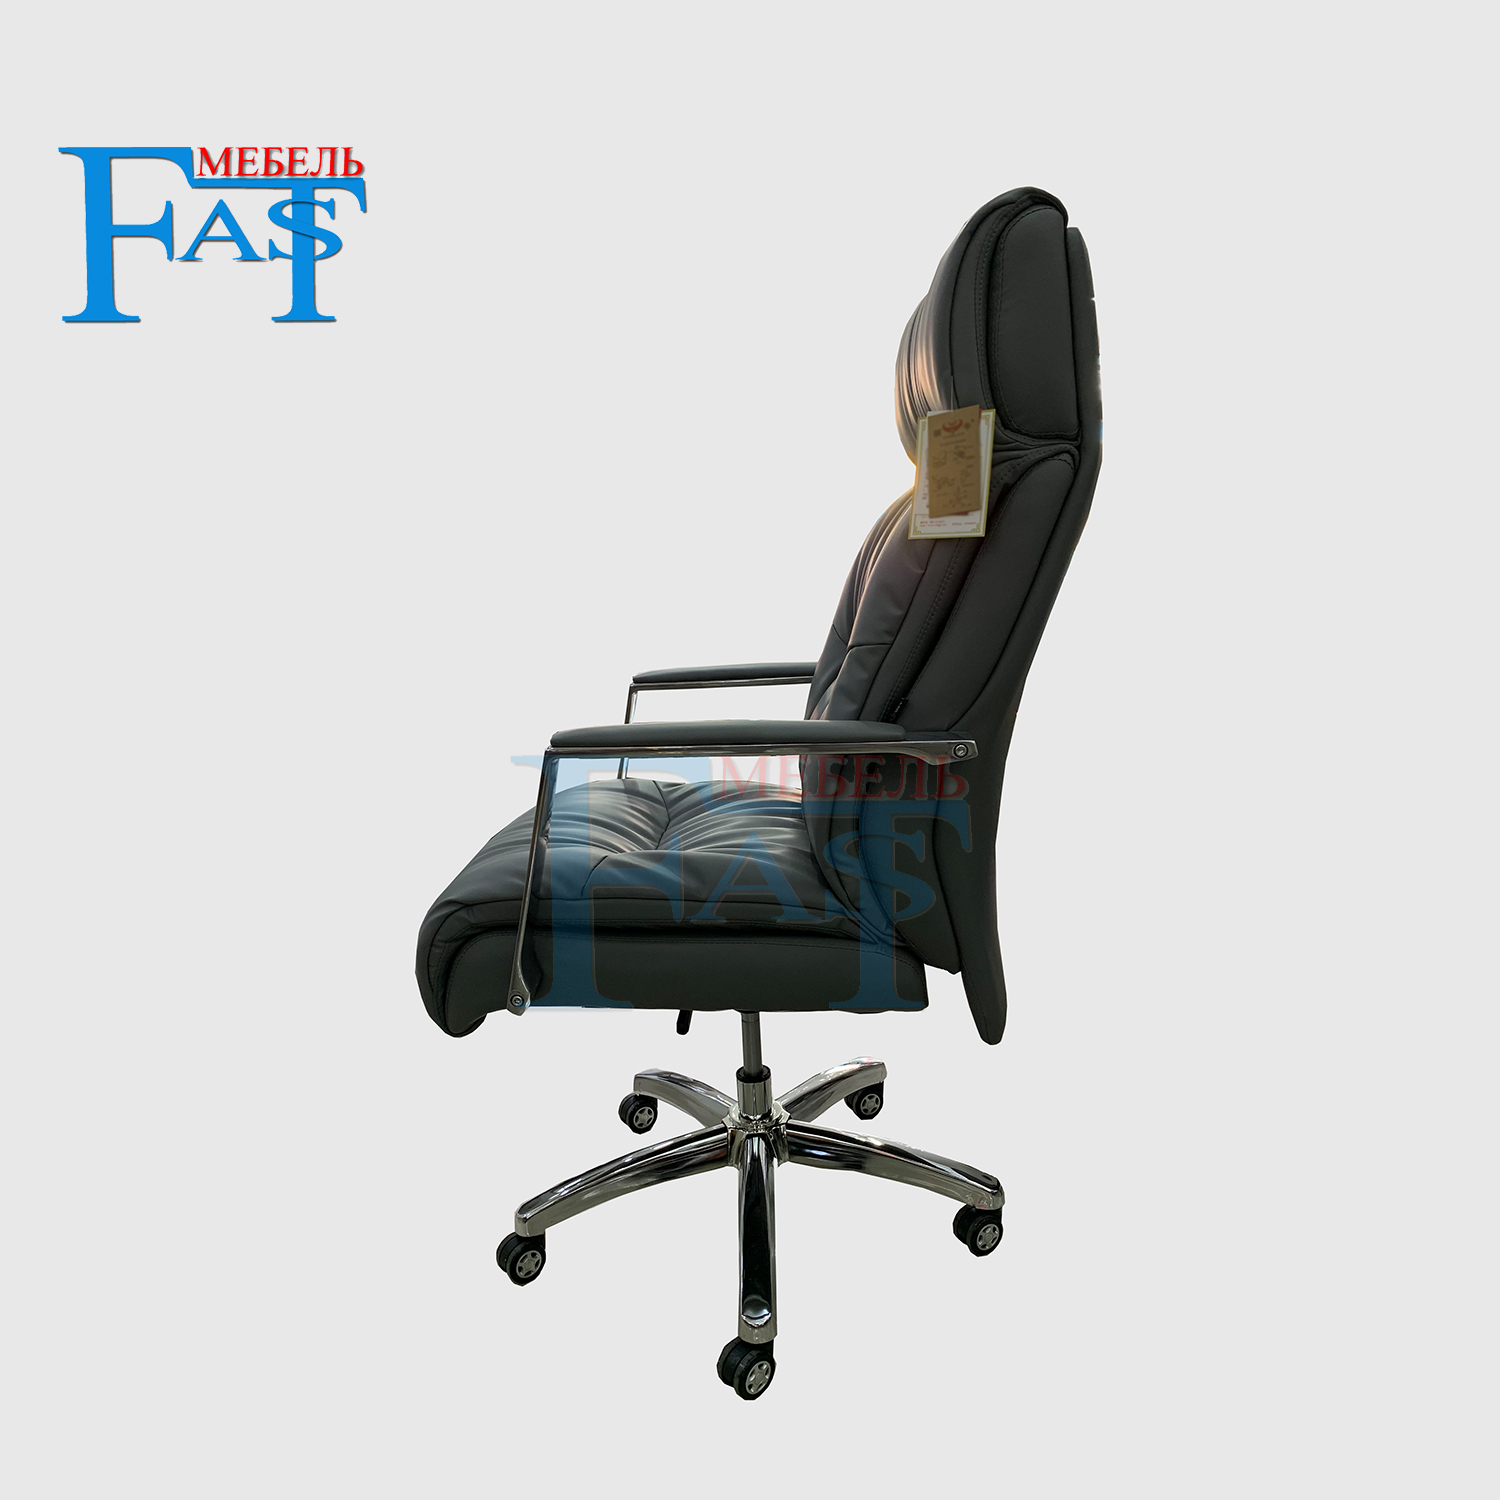 Купить с кэшбэком New aluminium office armchair home armchair computer armchair leather armchair swingable armchair with lift and swivel function